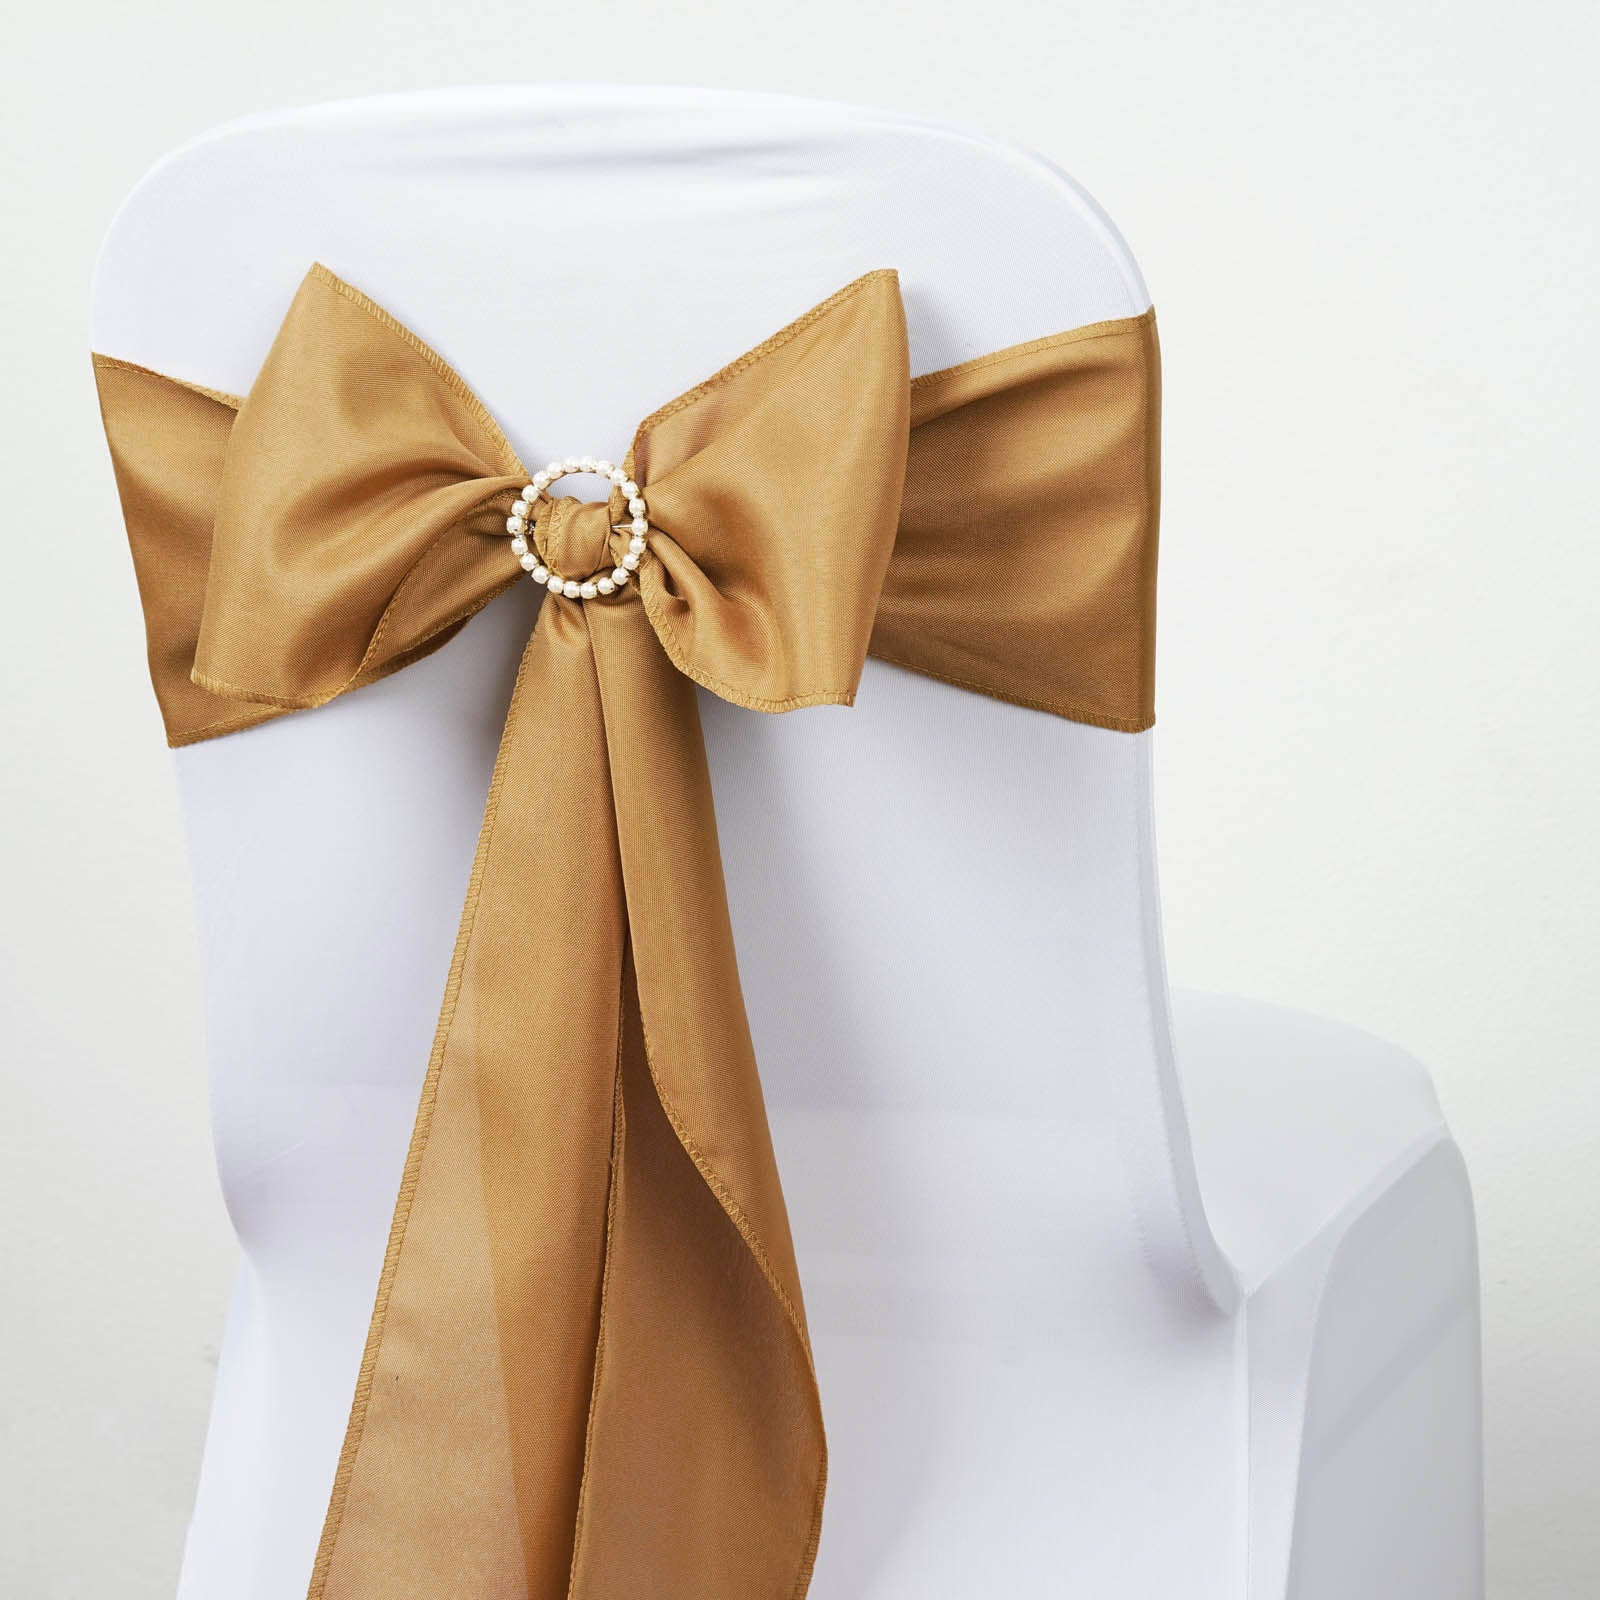 7fe3ac75d2769 ... 5 PCS ANTIQUE GOLD Polyester Chair Sashes Tie Bows Catering Wedding  Party Decorations - 6x108